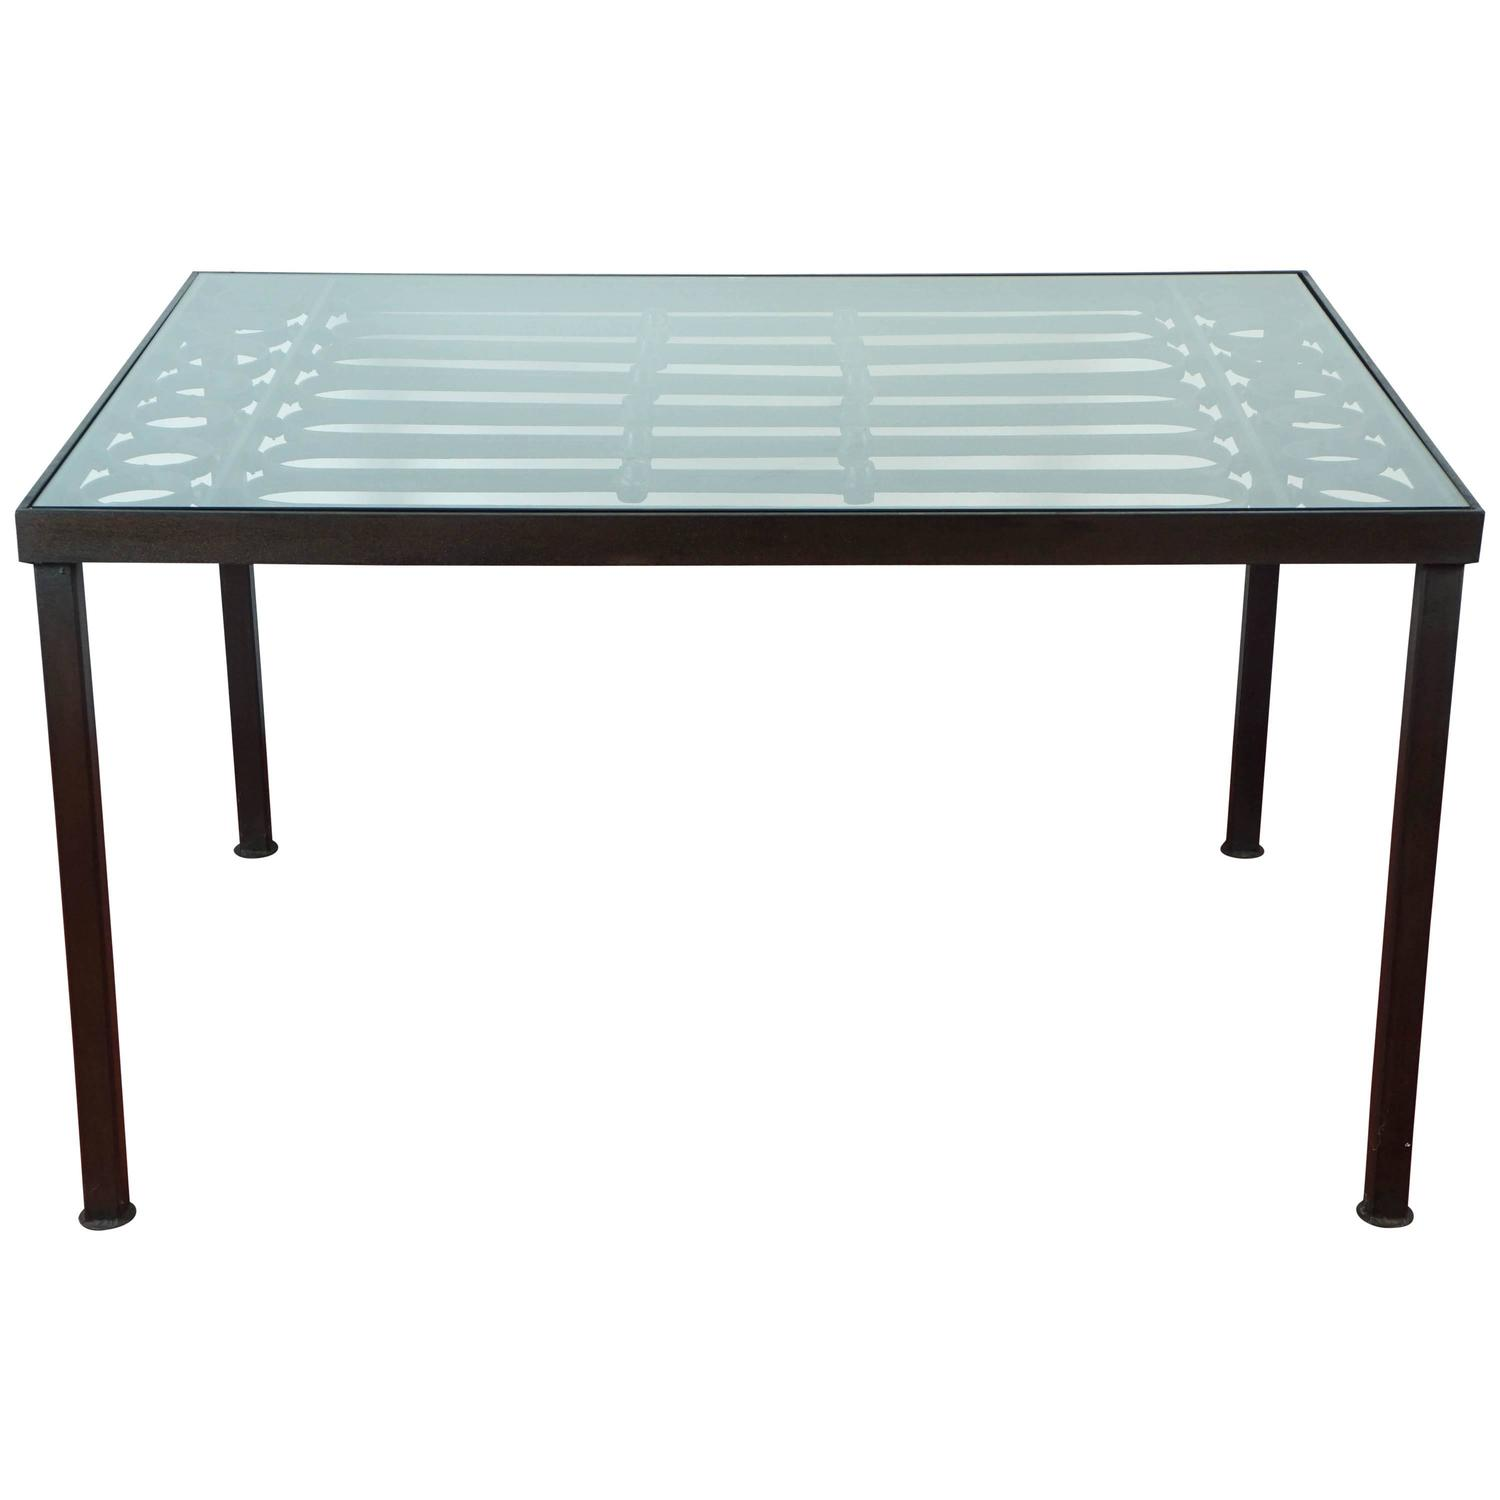 Wrought Iron and Glass Indoor Outdoor Dining Table For Sale at 1stdibs